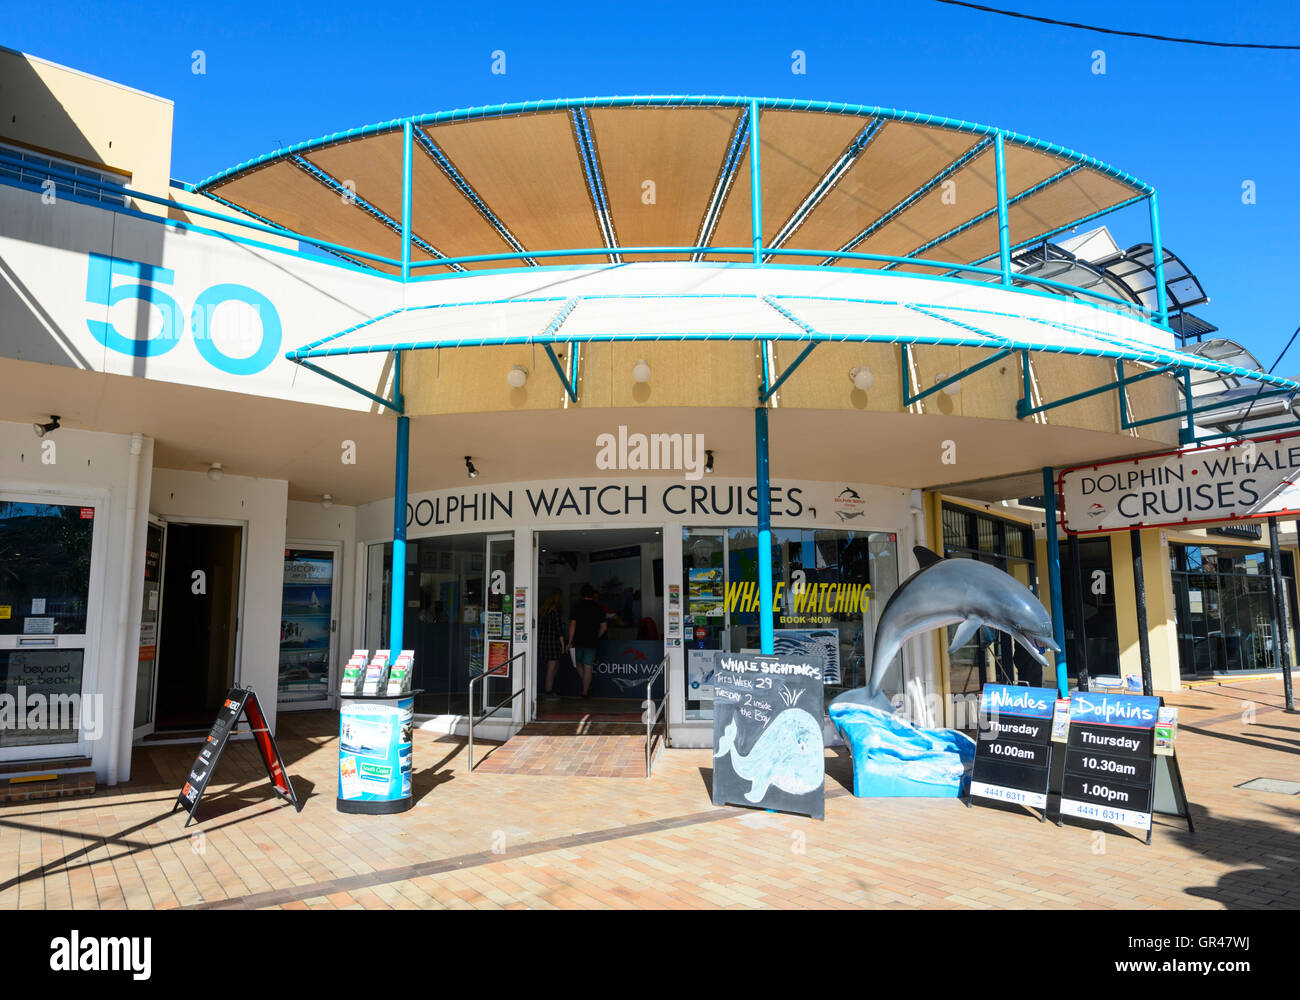 Dolphin Watch Cruises Agency in Huskisson, Jervis Bay, New South Wales, NSW, Australia - Stock Image